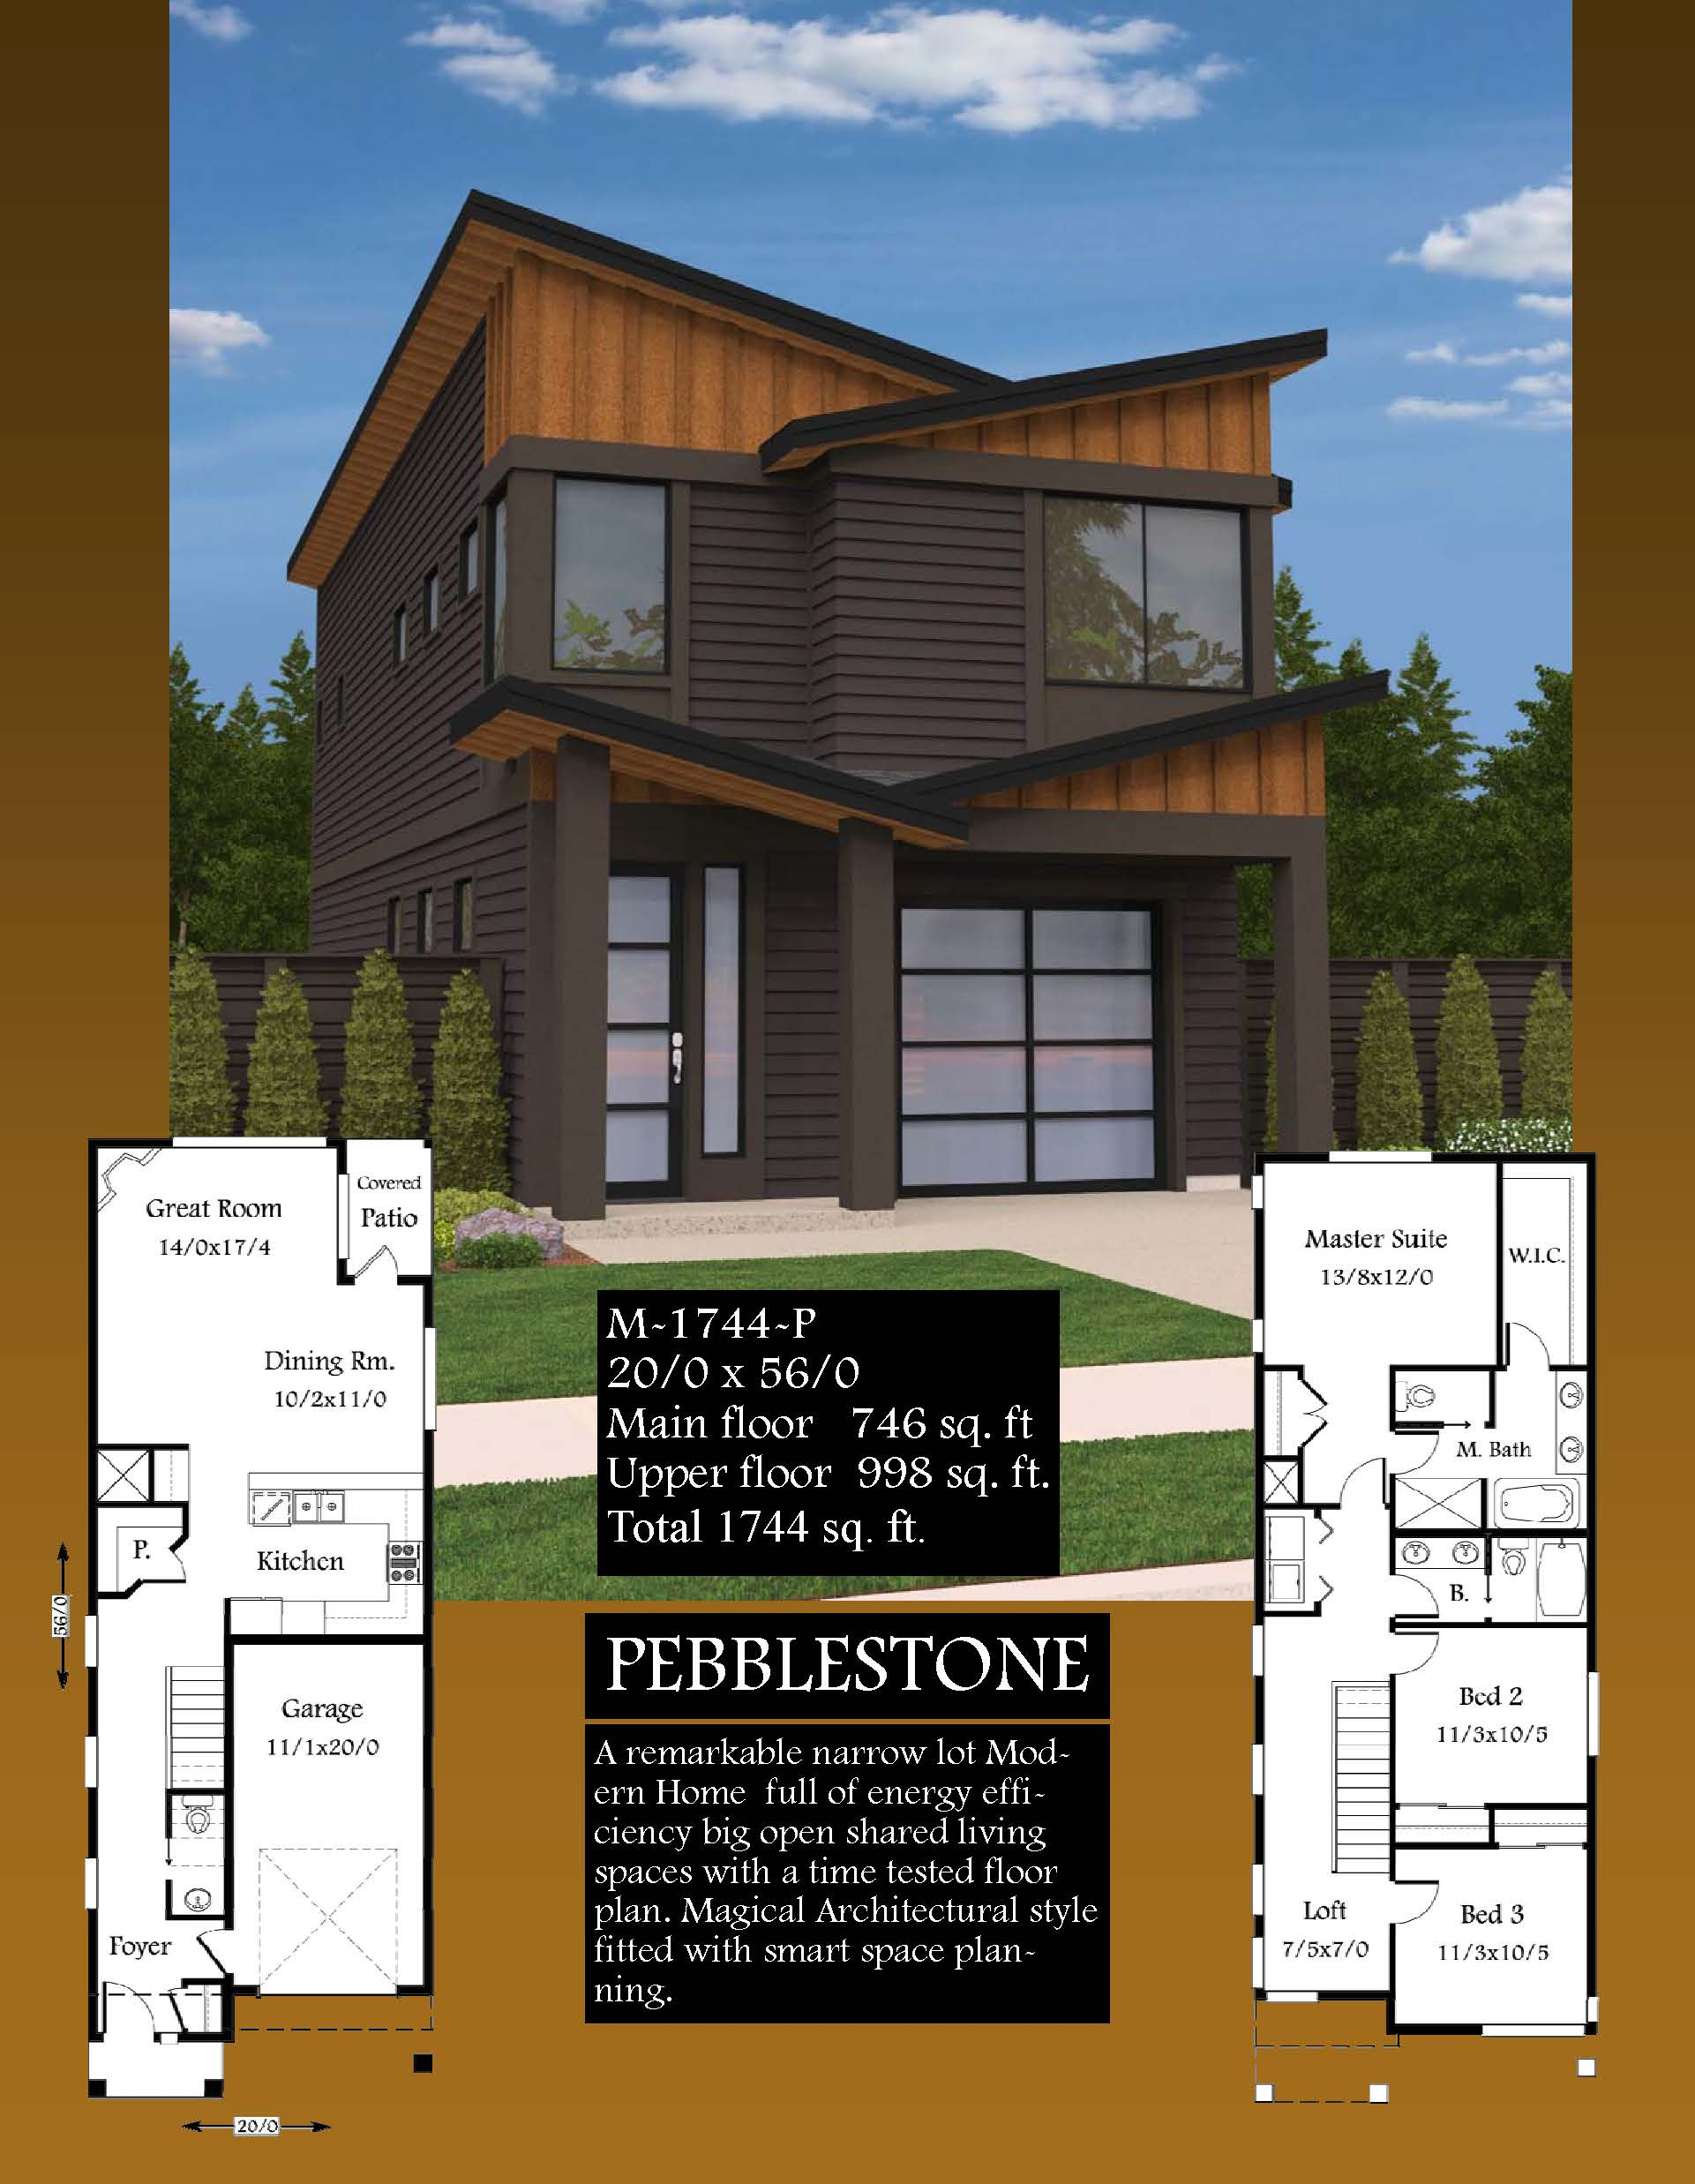 Pebblestone house plan contemporary house plans modern for Dwell small house plans